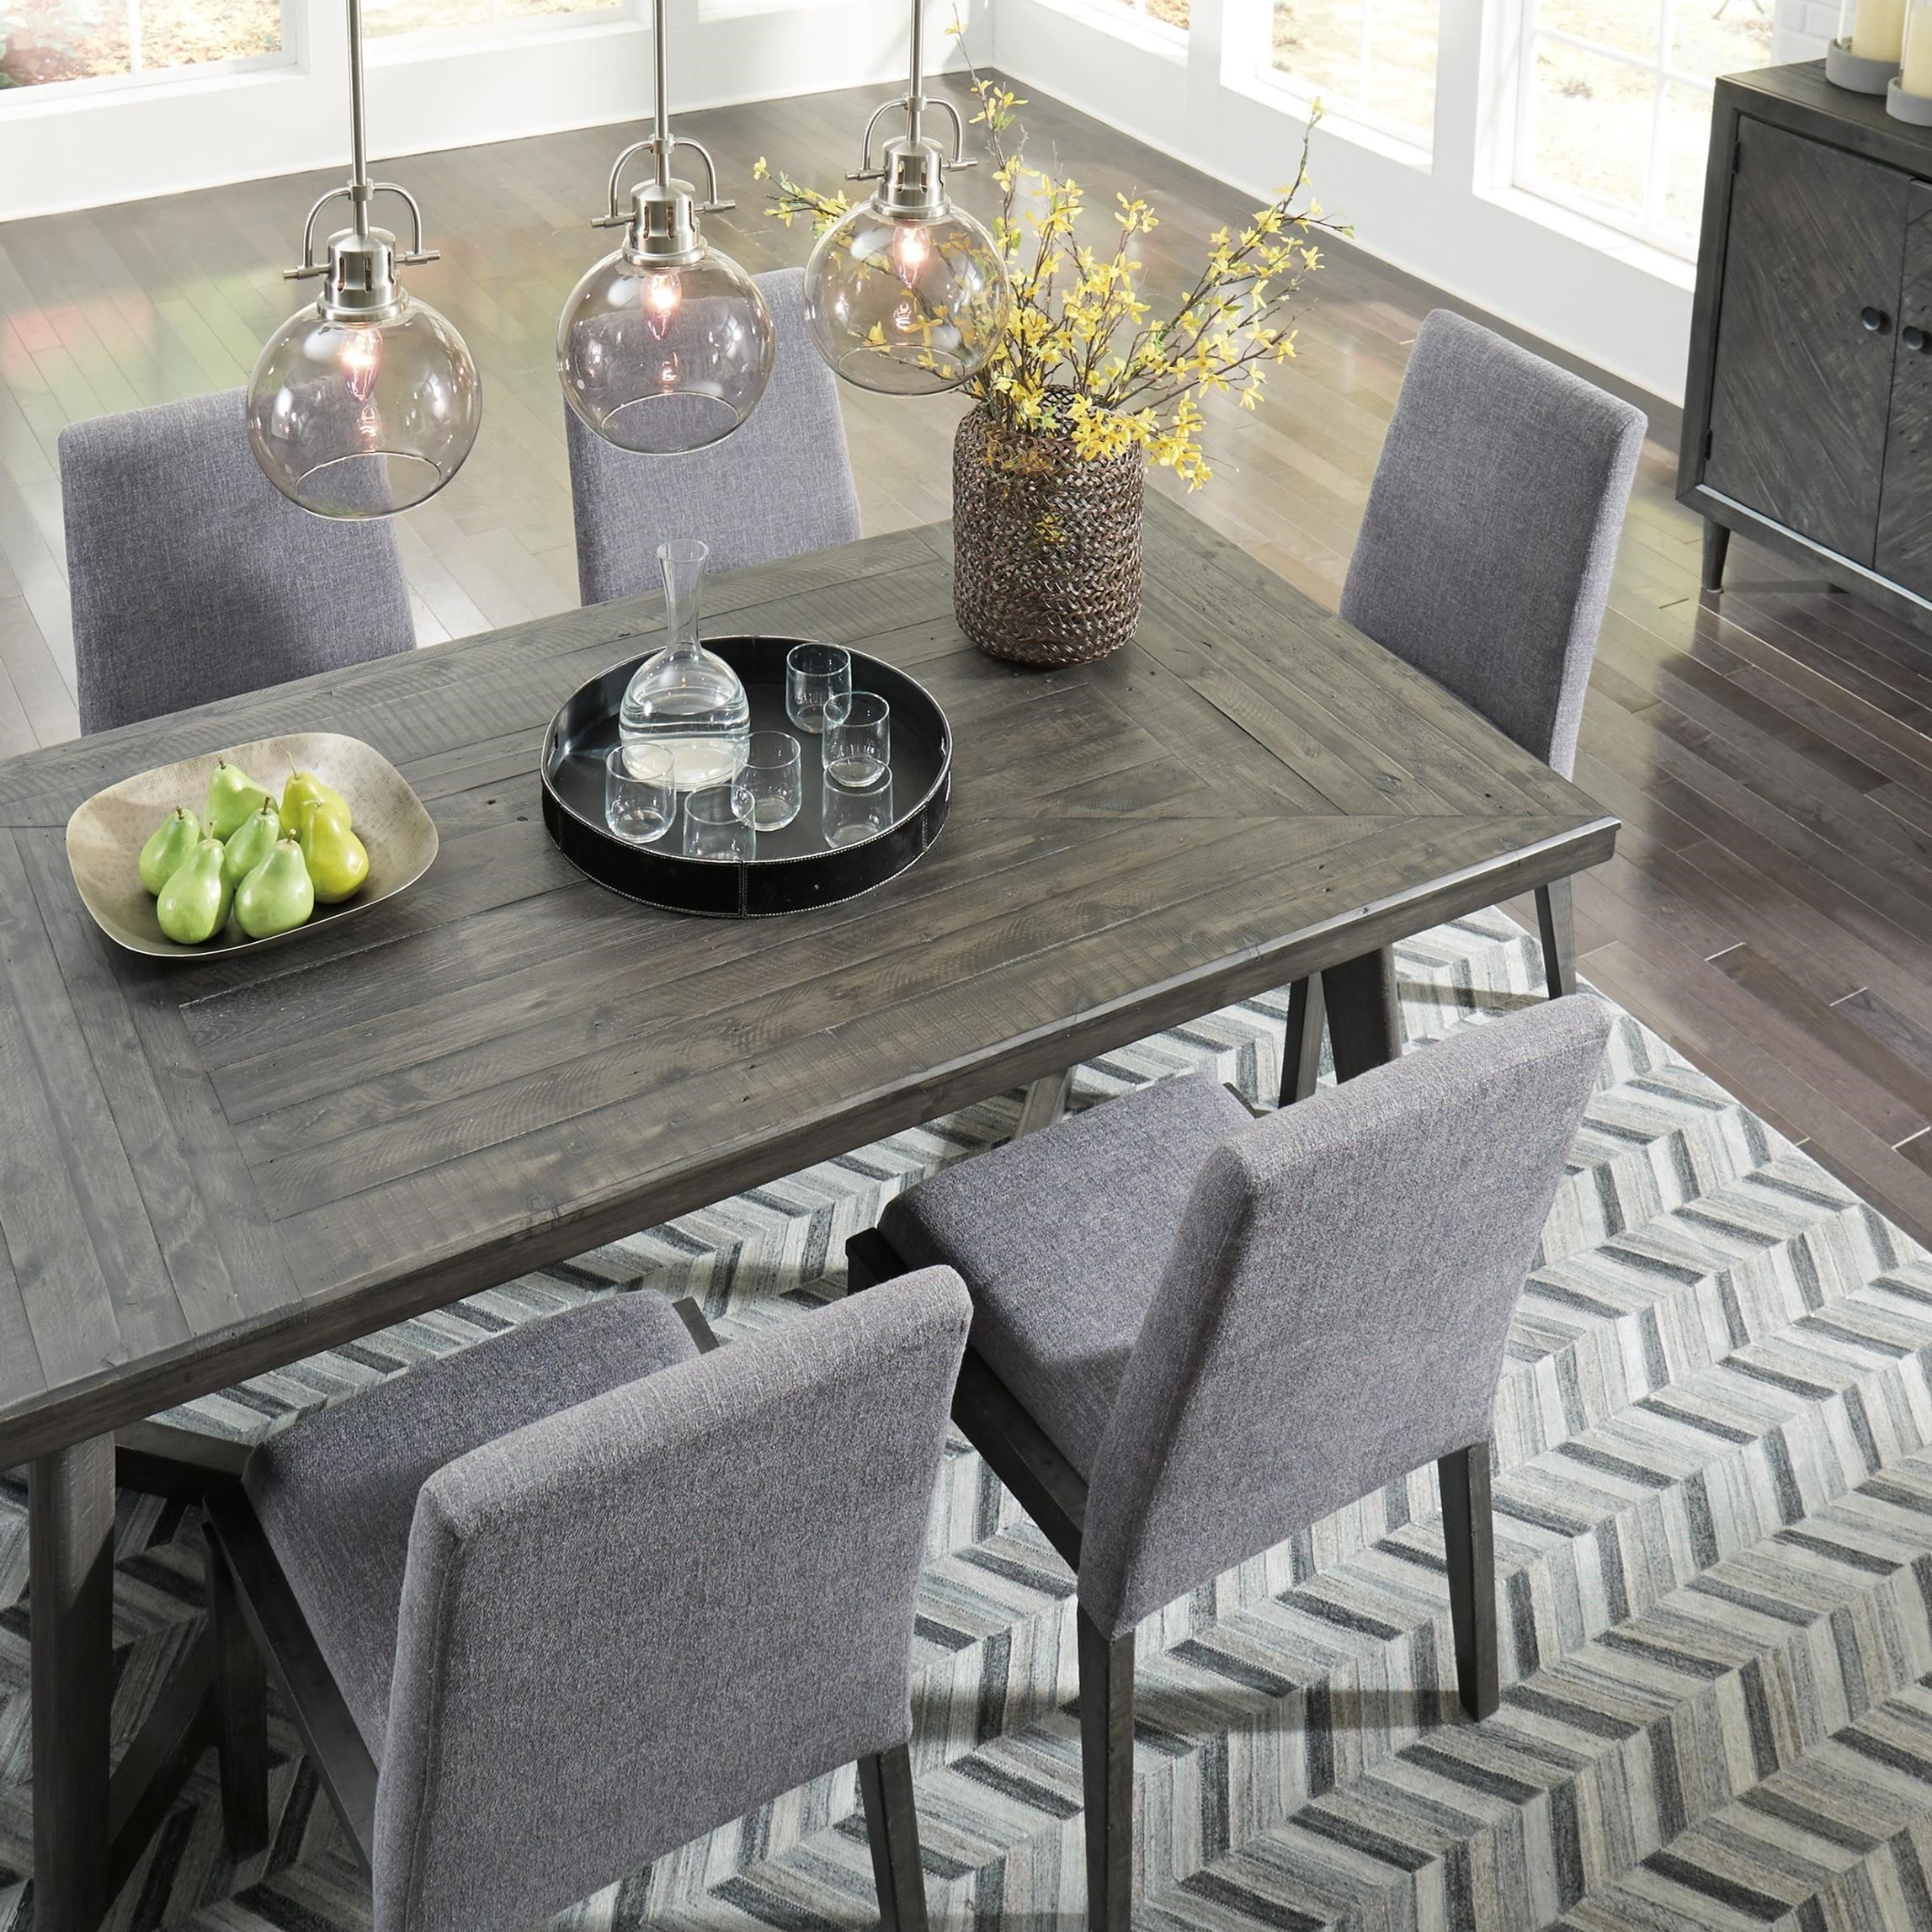 Signature Design By Ashley Besteneer Formal Dining Room: Signature Design By Ashley Besteneer D568-25 Contemporary